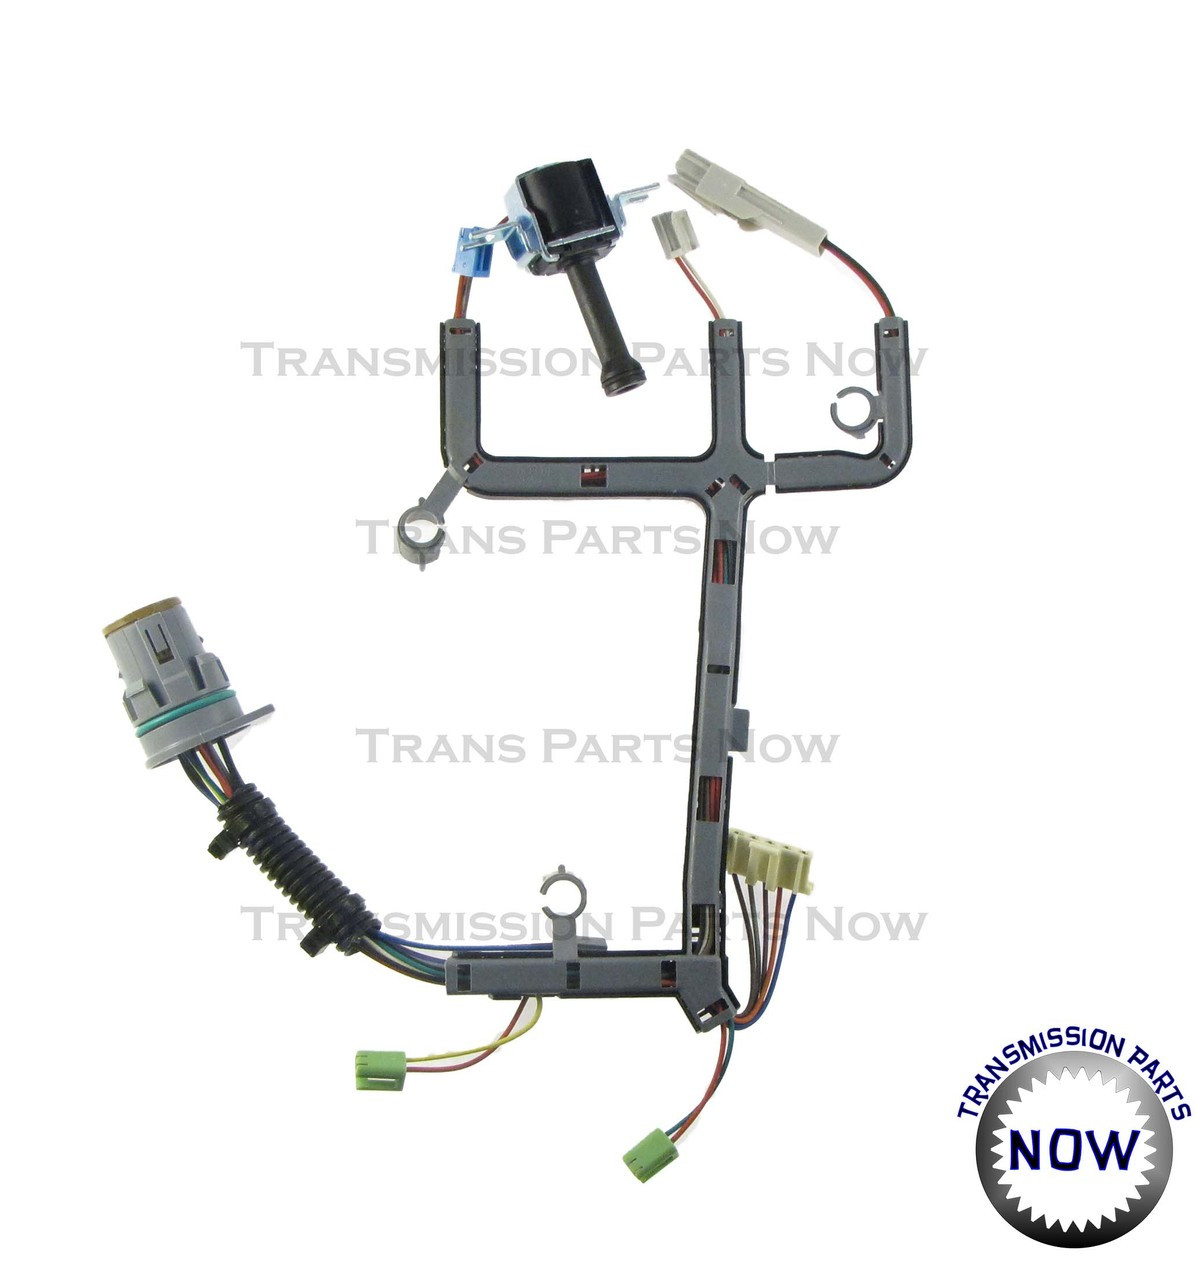 hight resolution of internal wire harness 2006 2008 rostra w iss 51869p